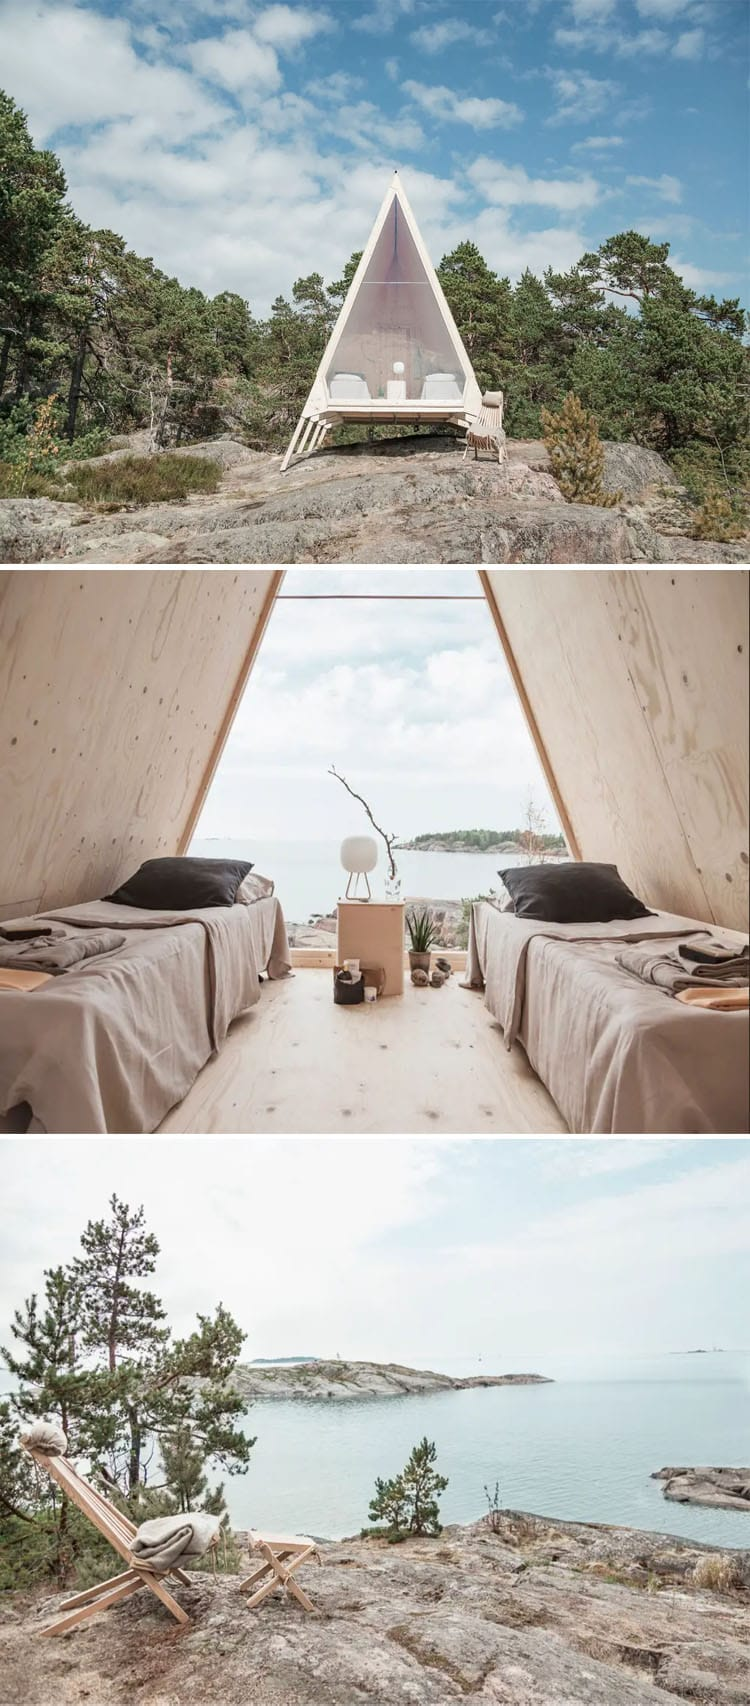 The Most Beautiful and Epic Airbnbs Worth Traveling For in 2019 | Finland A-frame Airbnb by the sea | Epic Airbnb rentals | Most beautiful Airbnb rentals around the world | Coolest Airbnbs around the globe | Unique Airbnbs | Best Airbnbs to rent in 2019 | Airbnb design | Airbnb tips | Airbnb Ideas